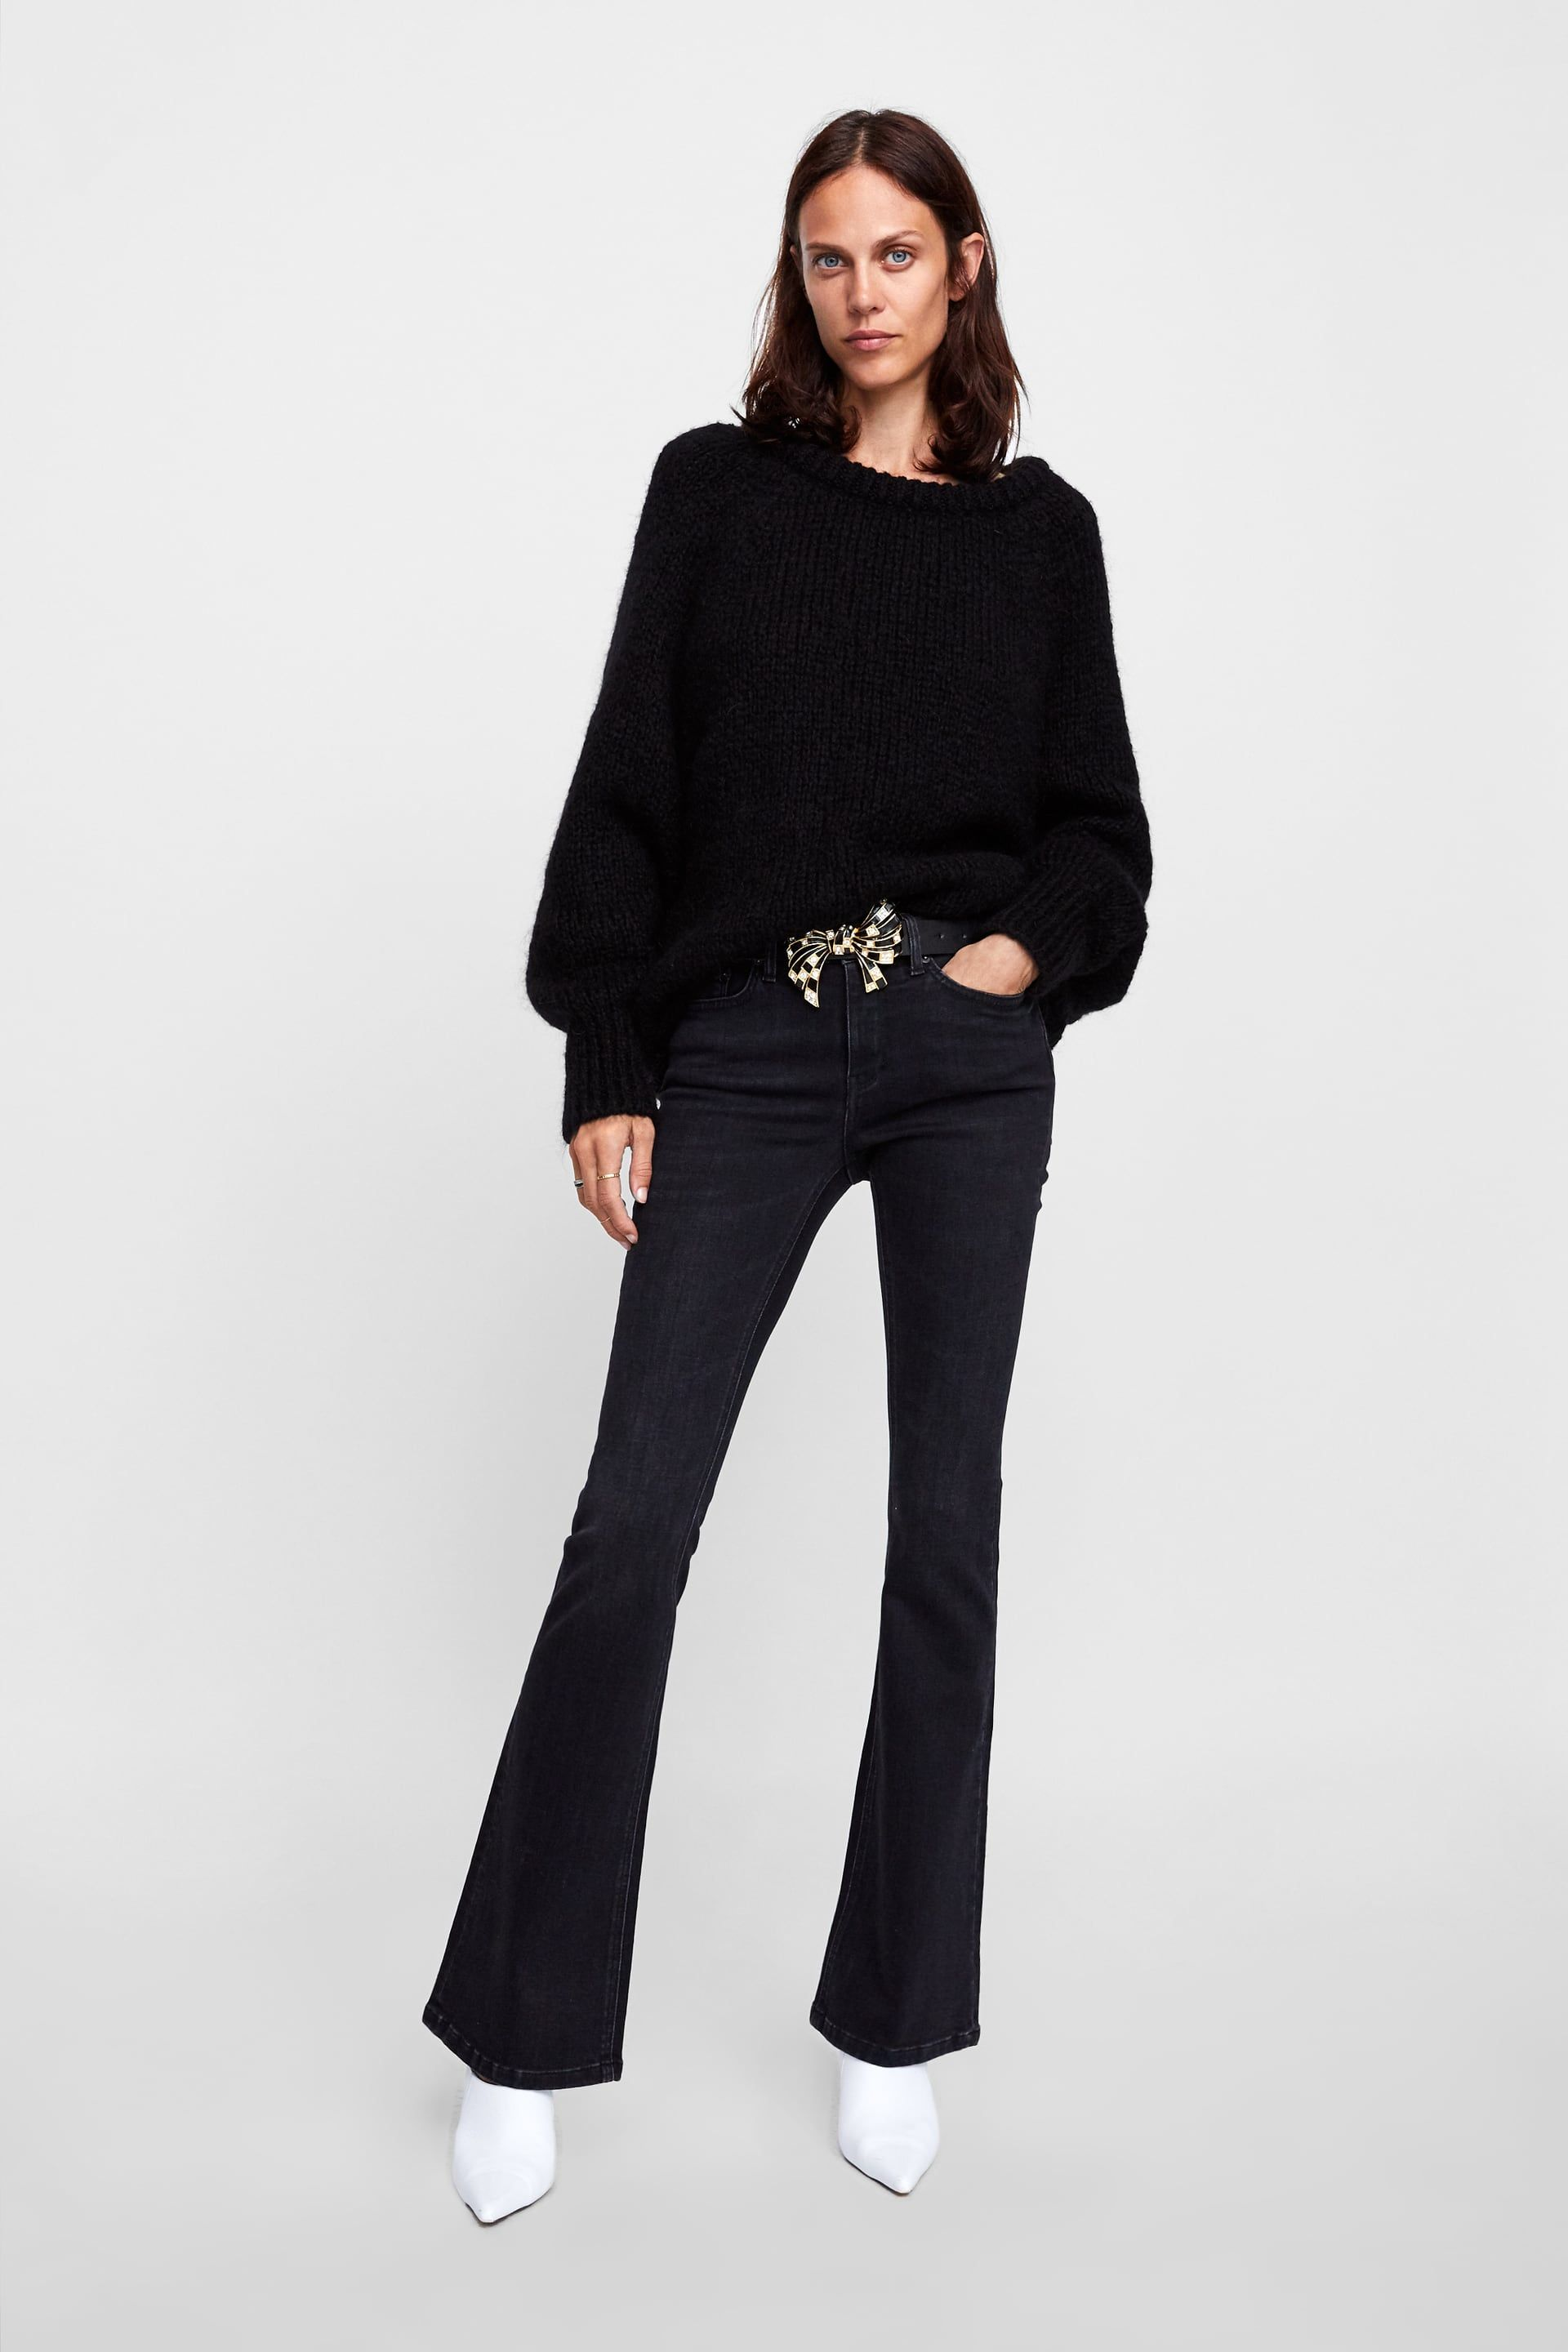 7fa6f2ffb2 Image 1 of SKINNY FLARE MOORE BLACK JEANS from Zara | Lynne | Jeans ...